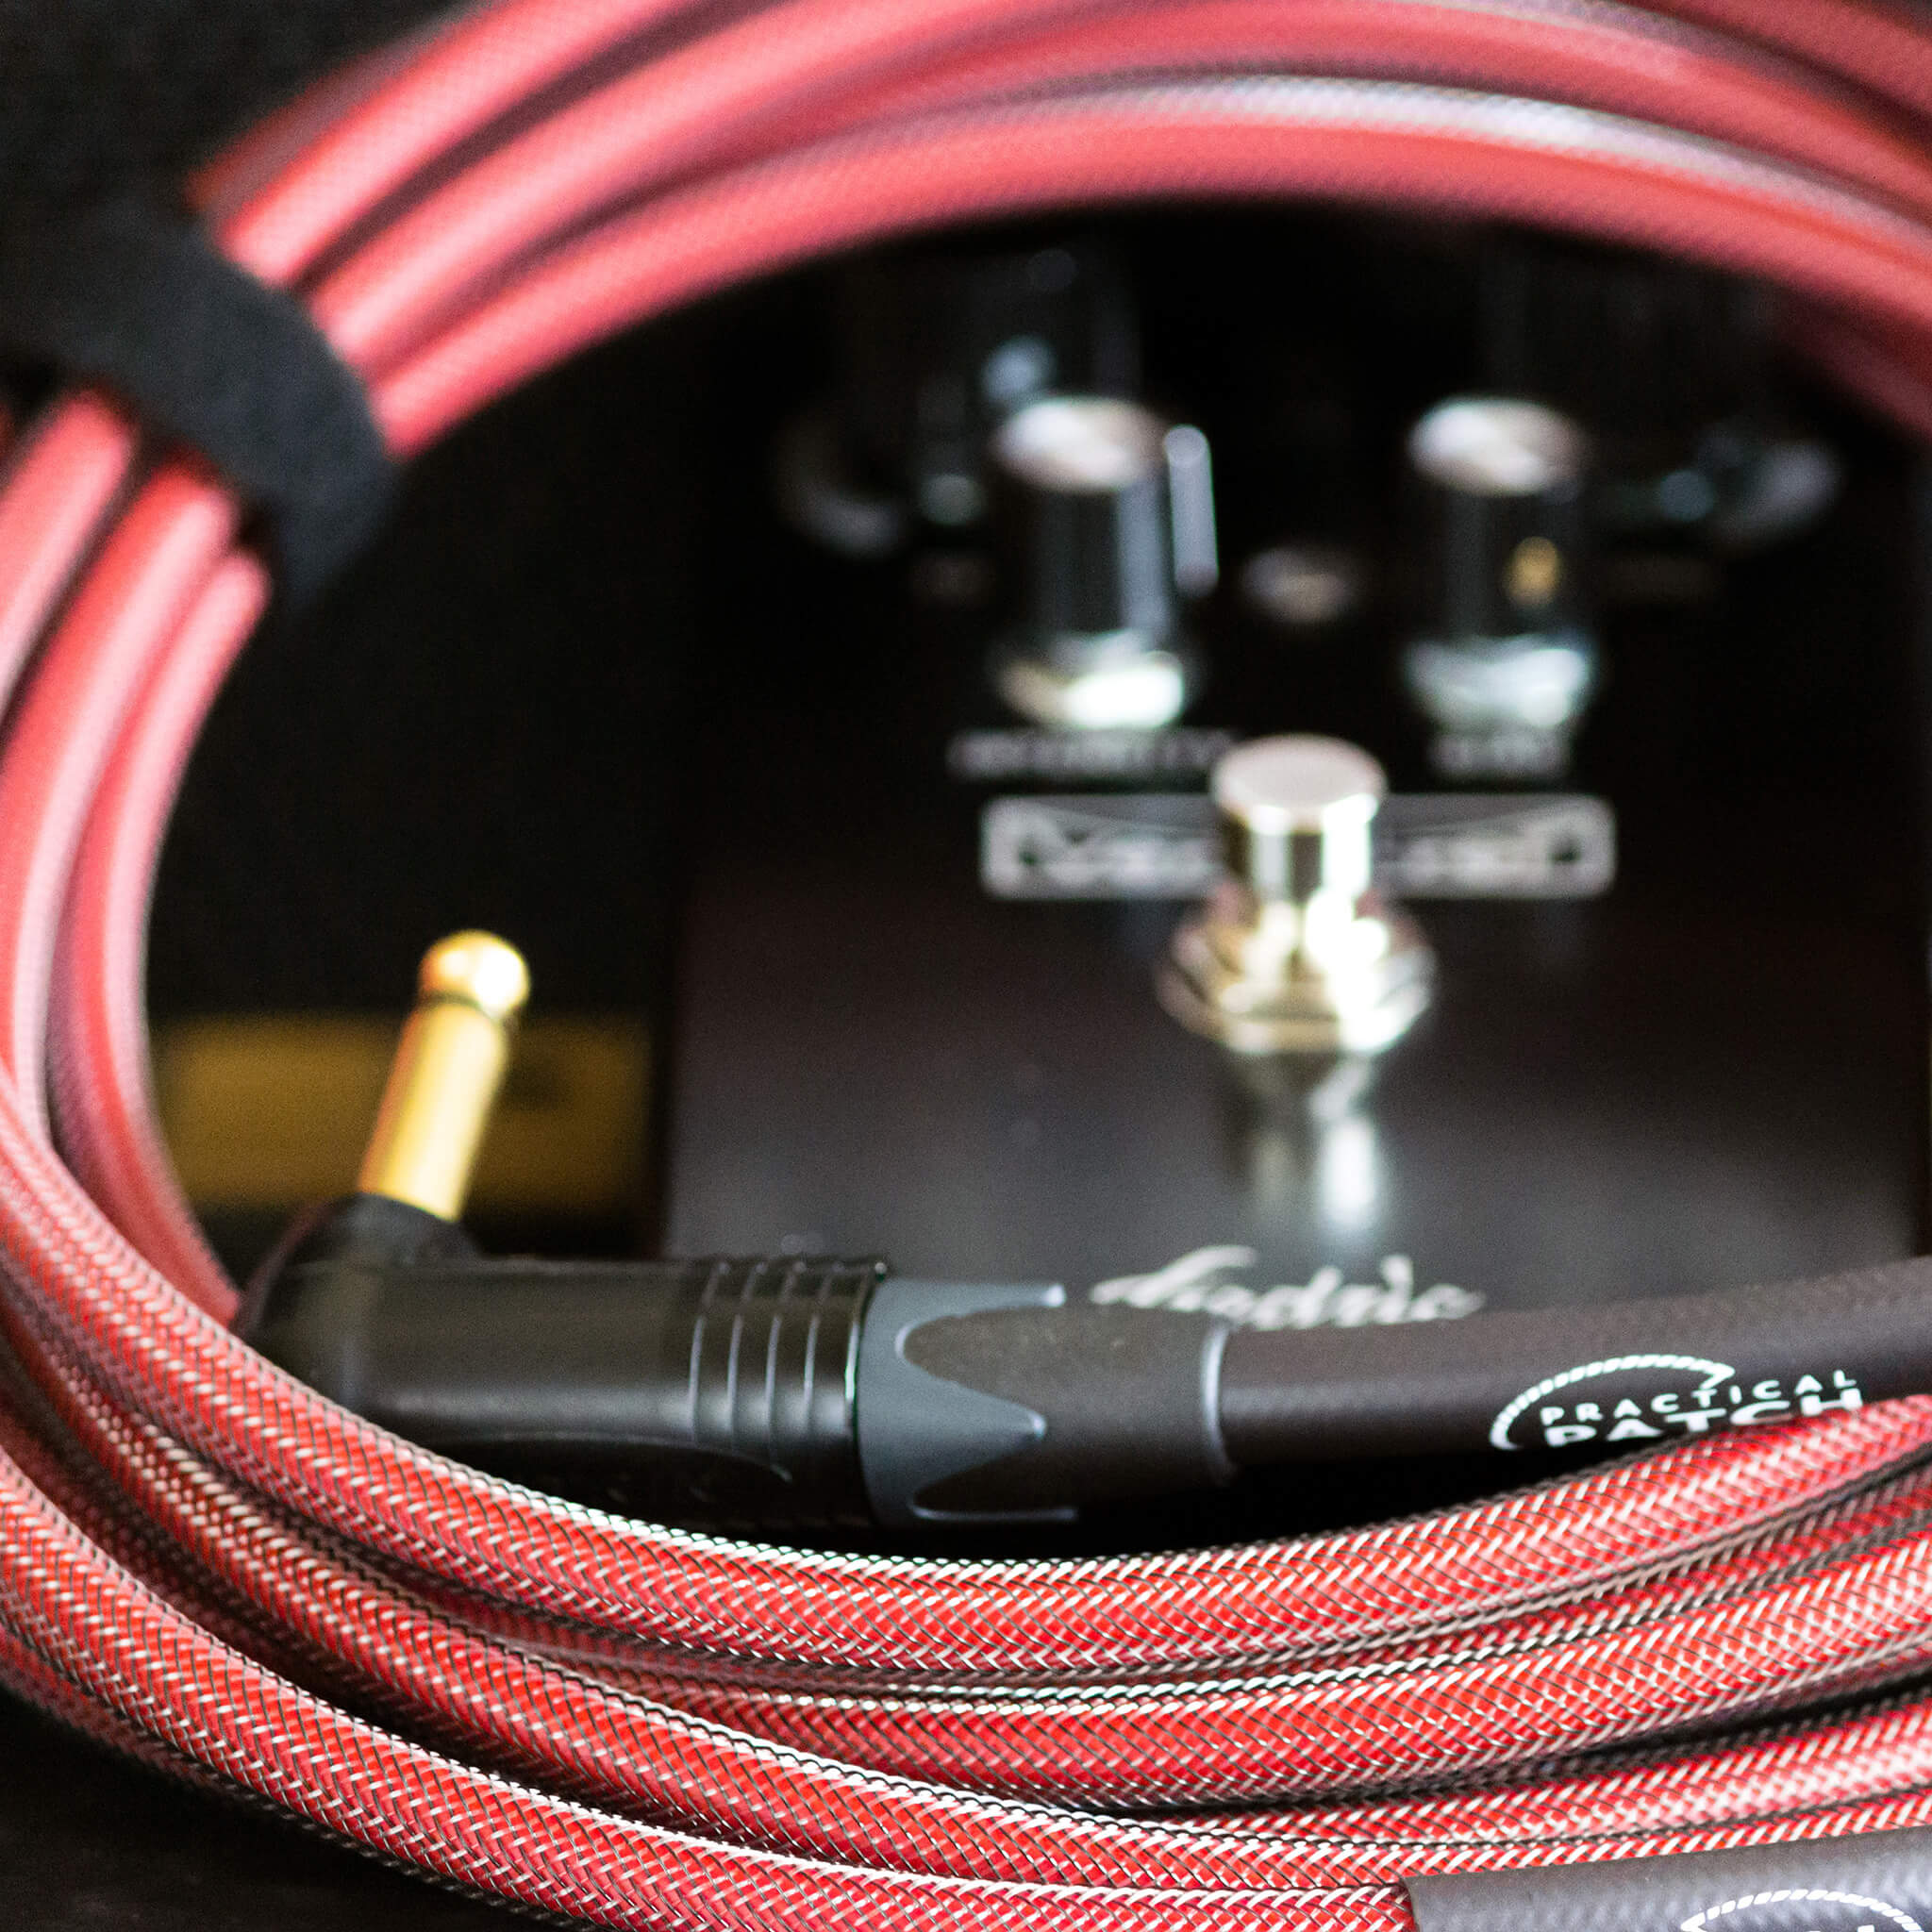 PRACTICAL PATCH Instrument Cable 15ft Oxblood Context - Boost Guitar Pedals